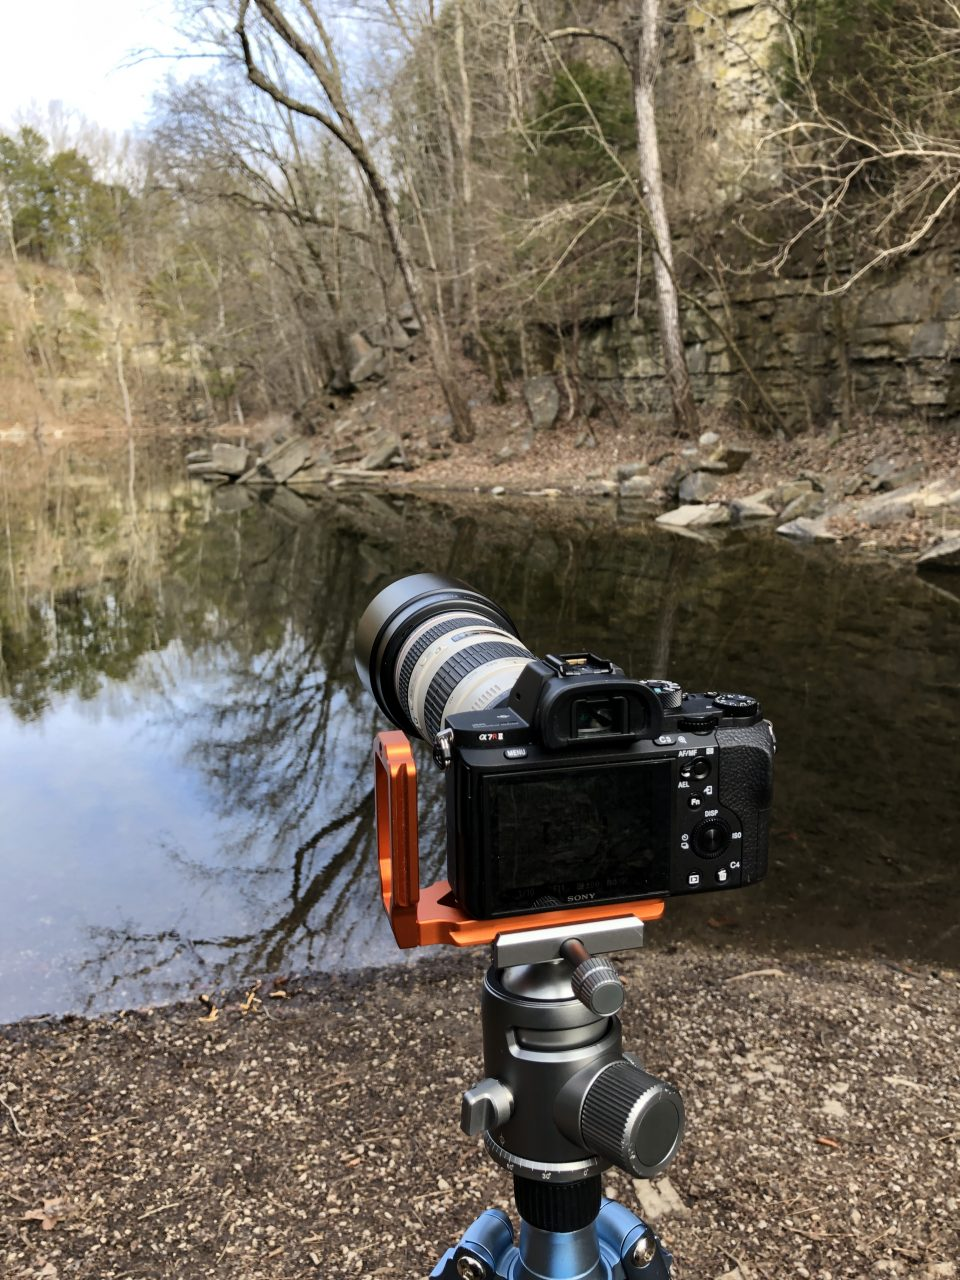 My trusty rig on the location of the mirror-surface Hidden Lake.